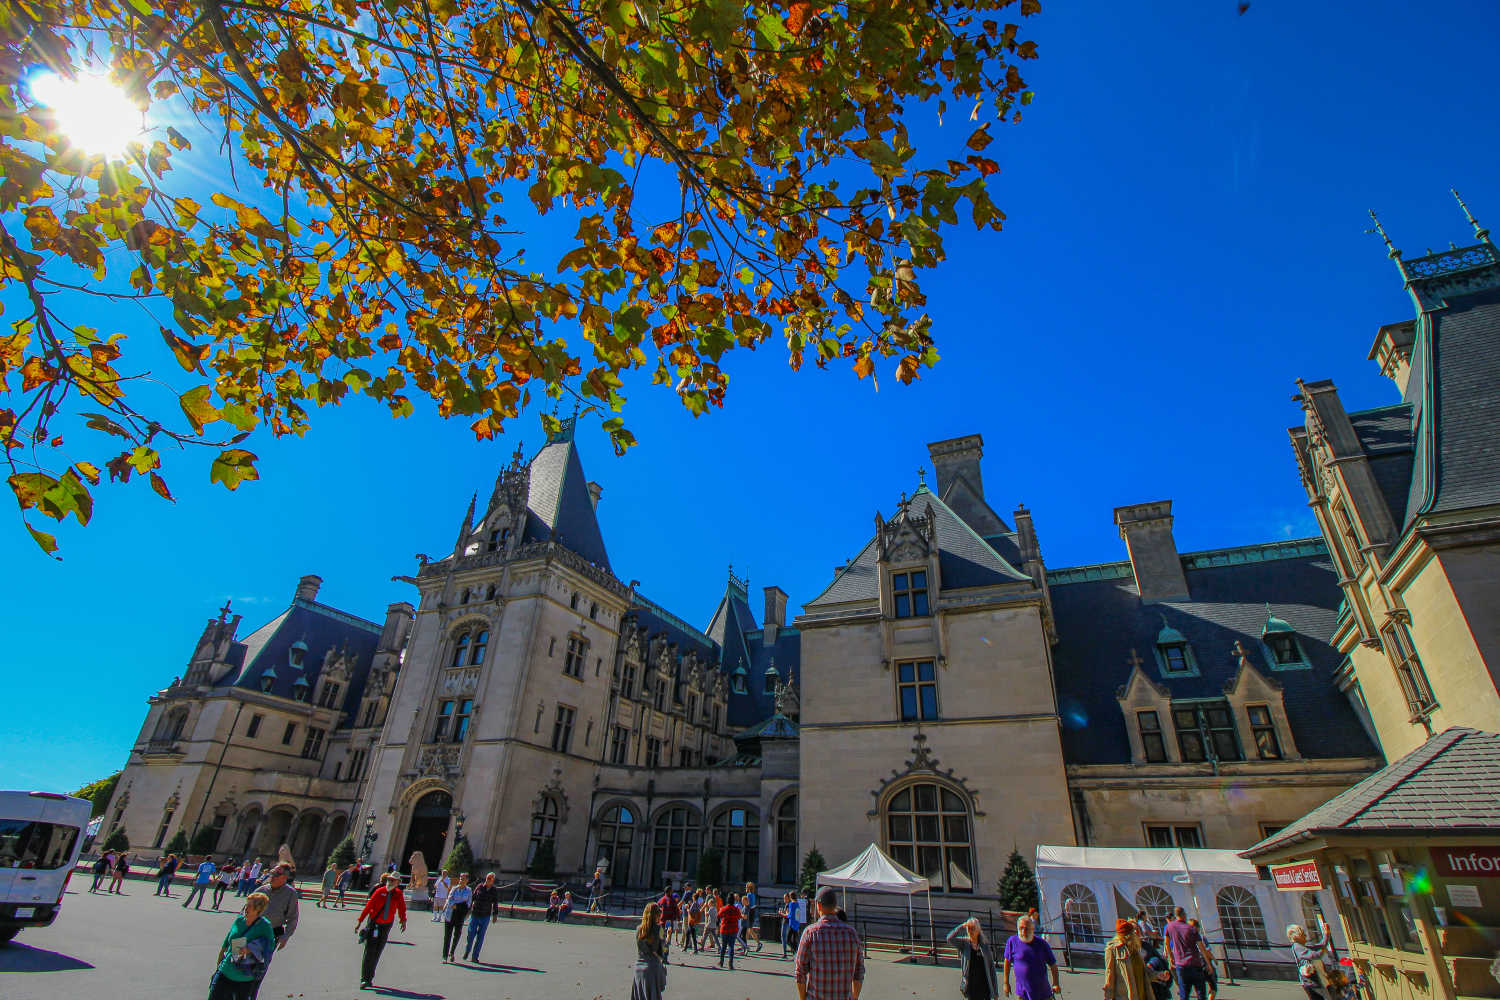 How to visit the Biltmore with kids